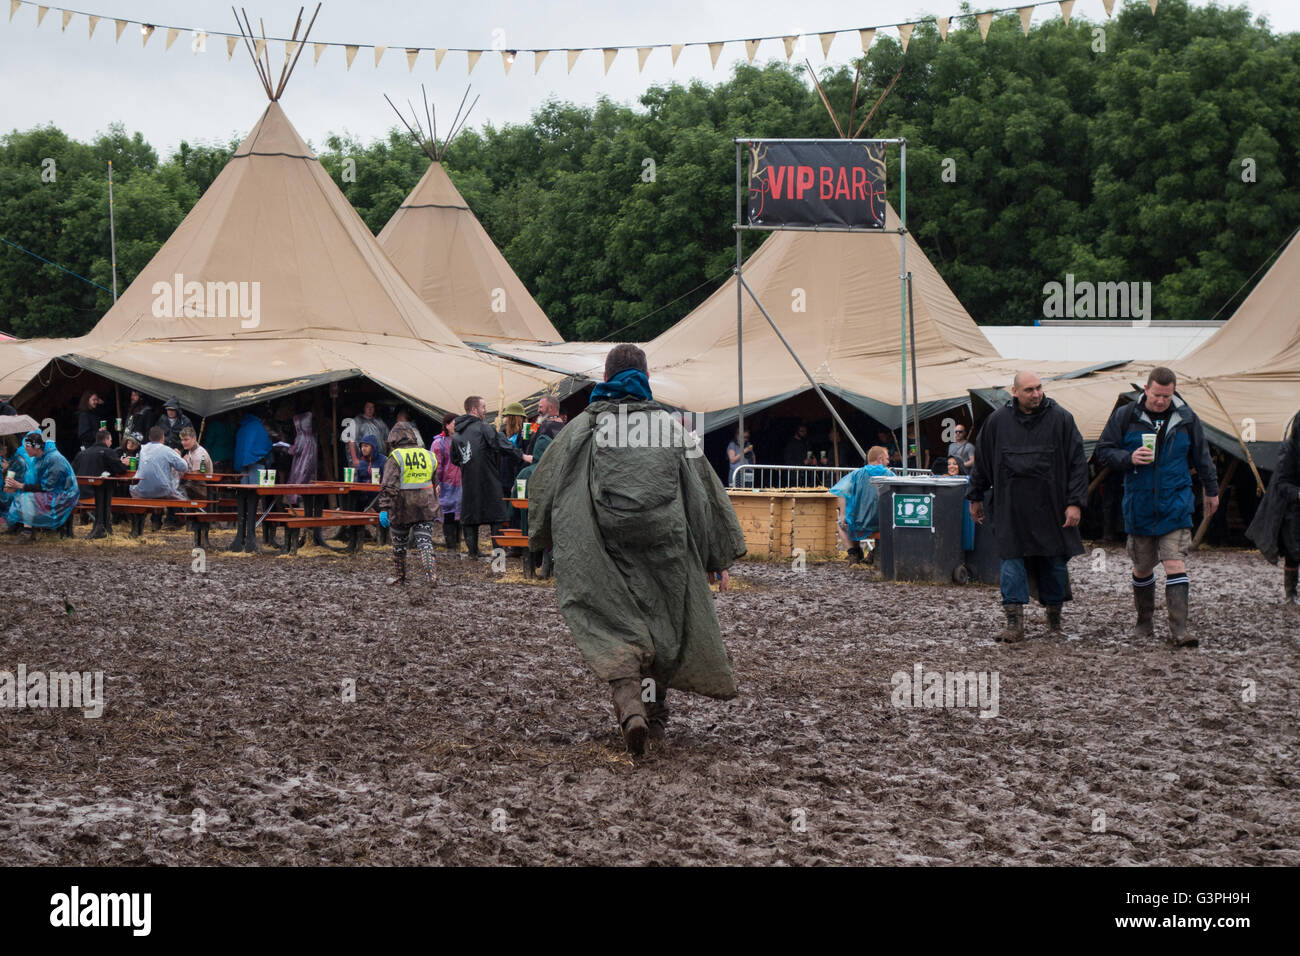 Vip yurty at download festival 2010 | rip yurty | cparkyuk | flickr.